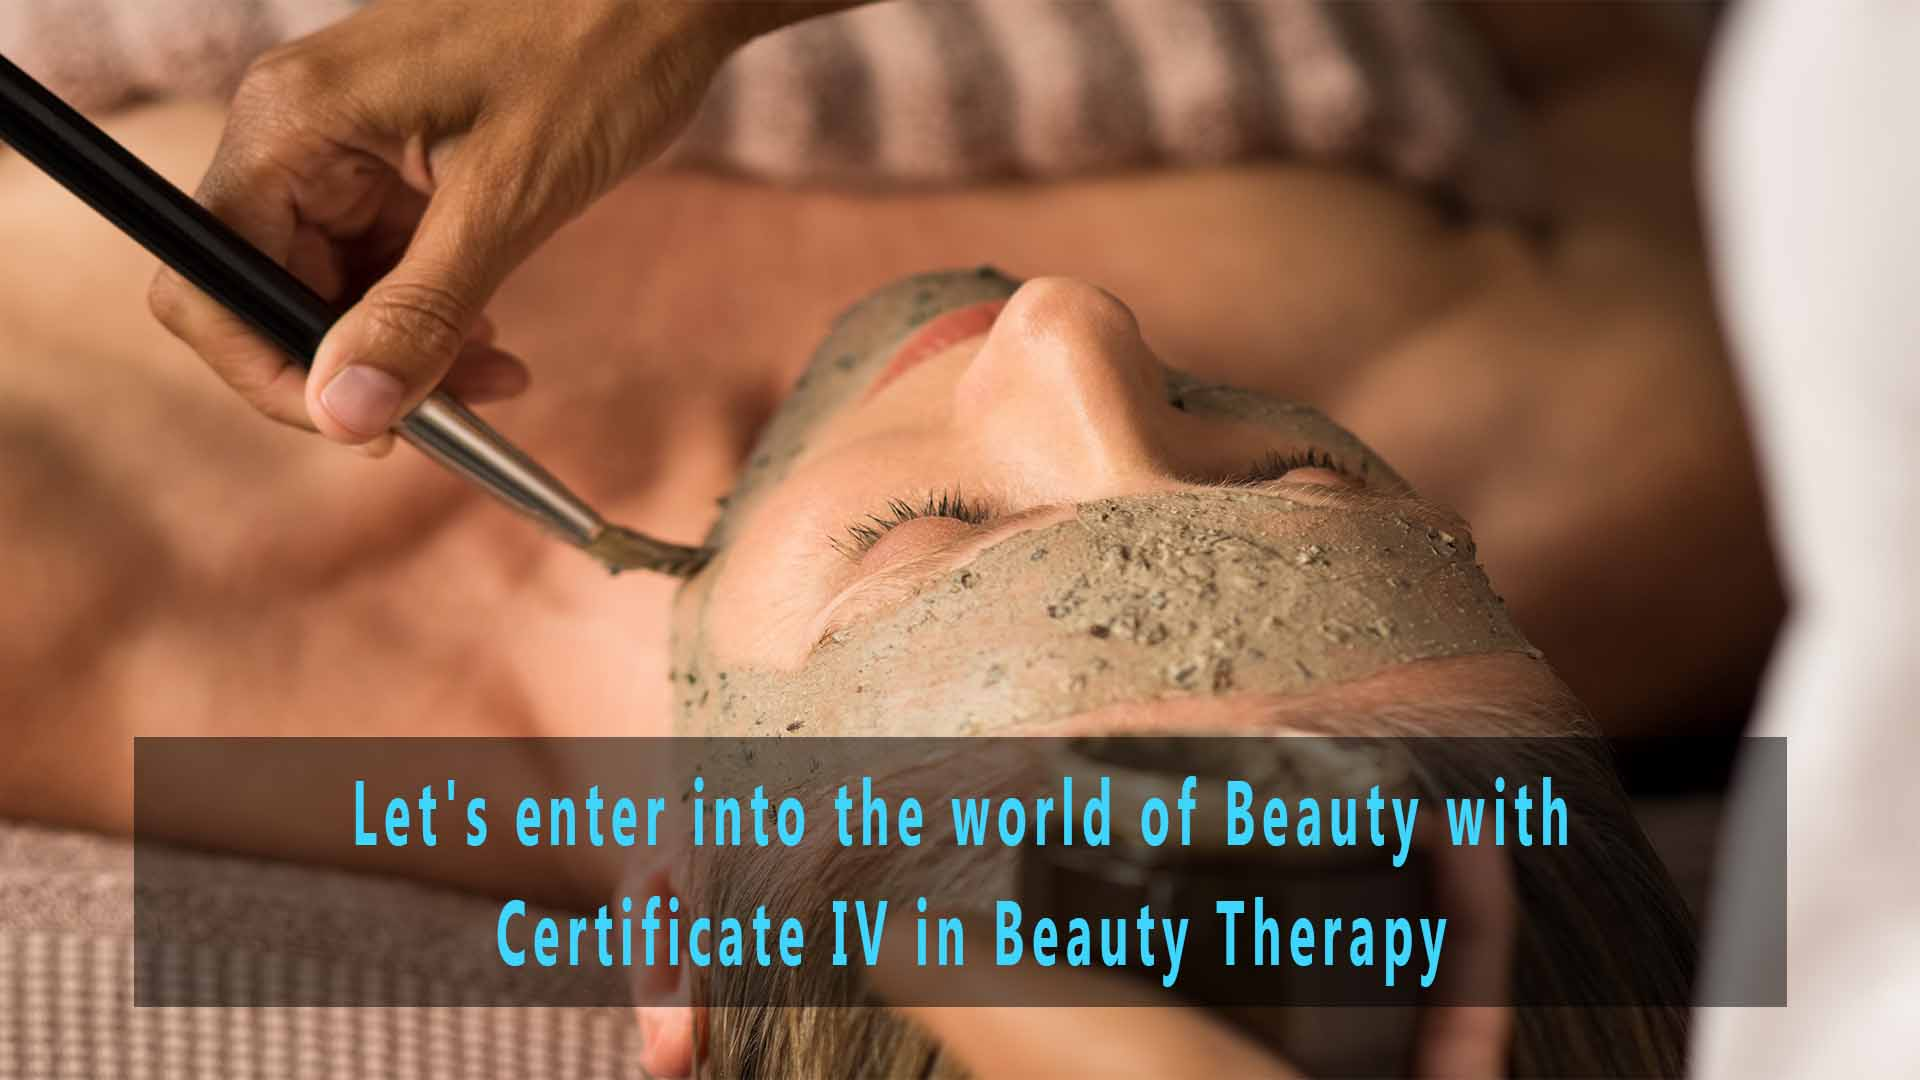 let-s-enter-into-the-world-of-beauty-with-certificate-iv-in-beauty-therapy